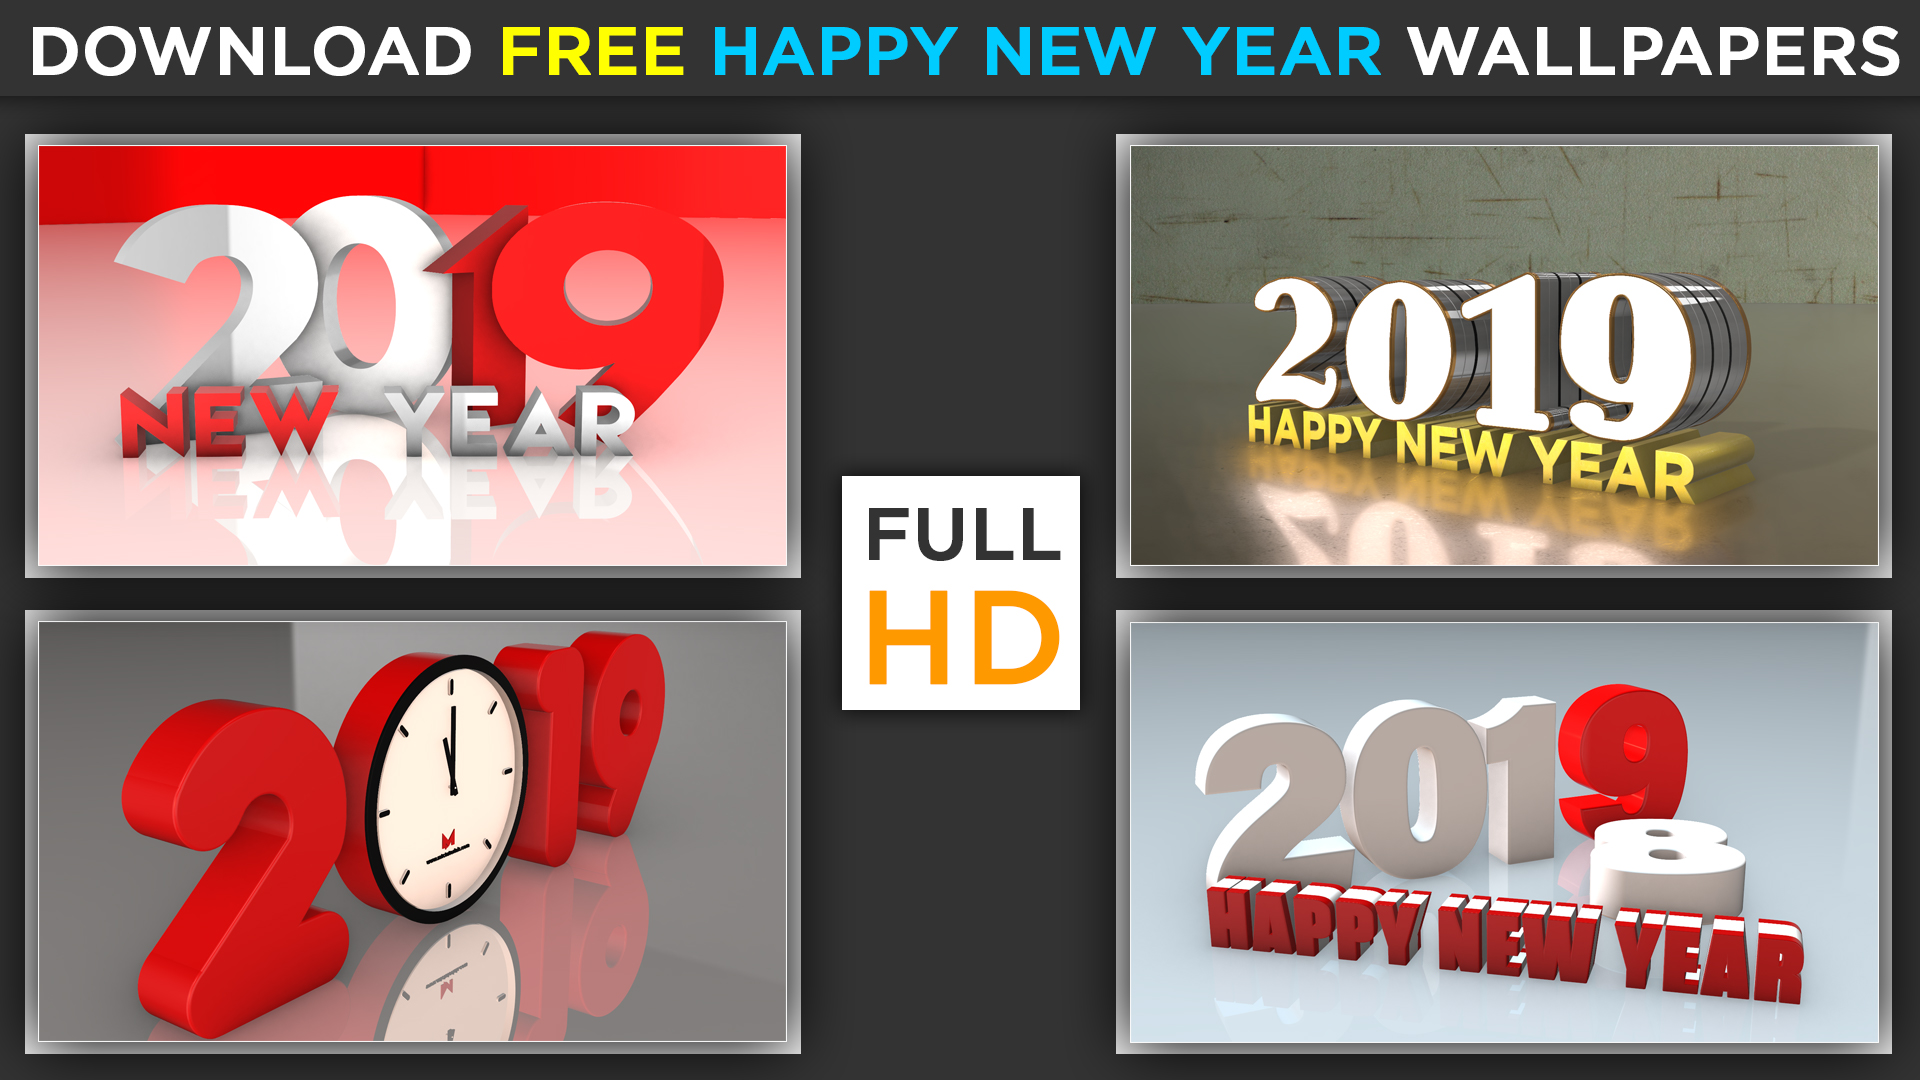 Happy New Year High Quality 3d Wallpapers And Images Download Free